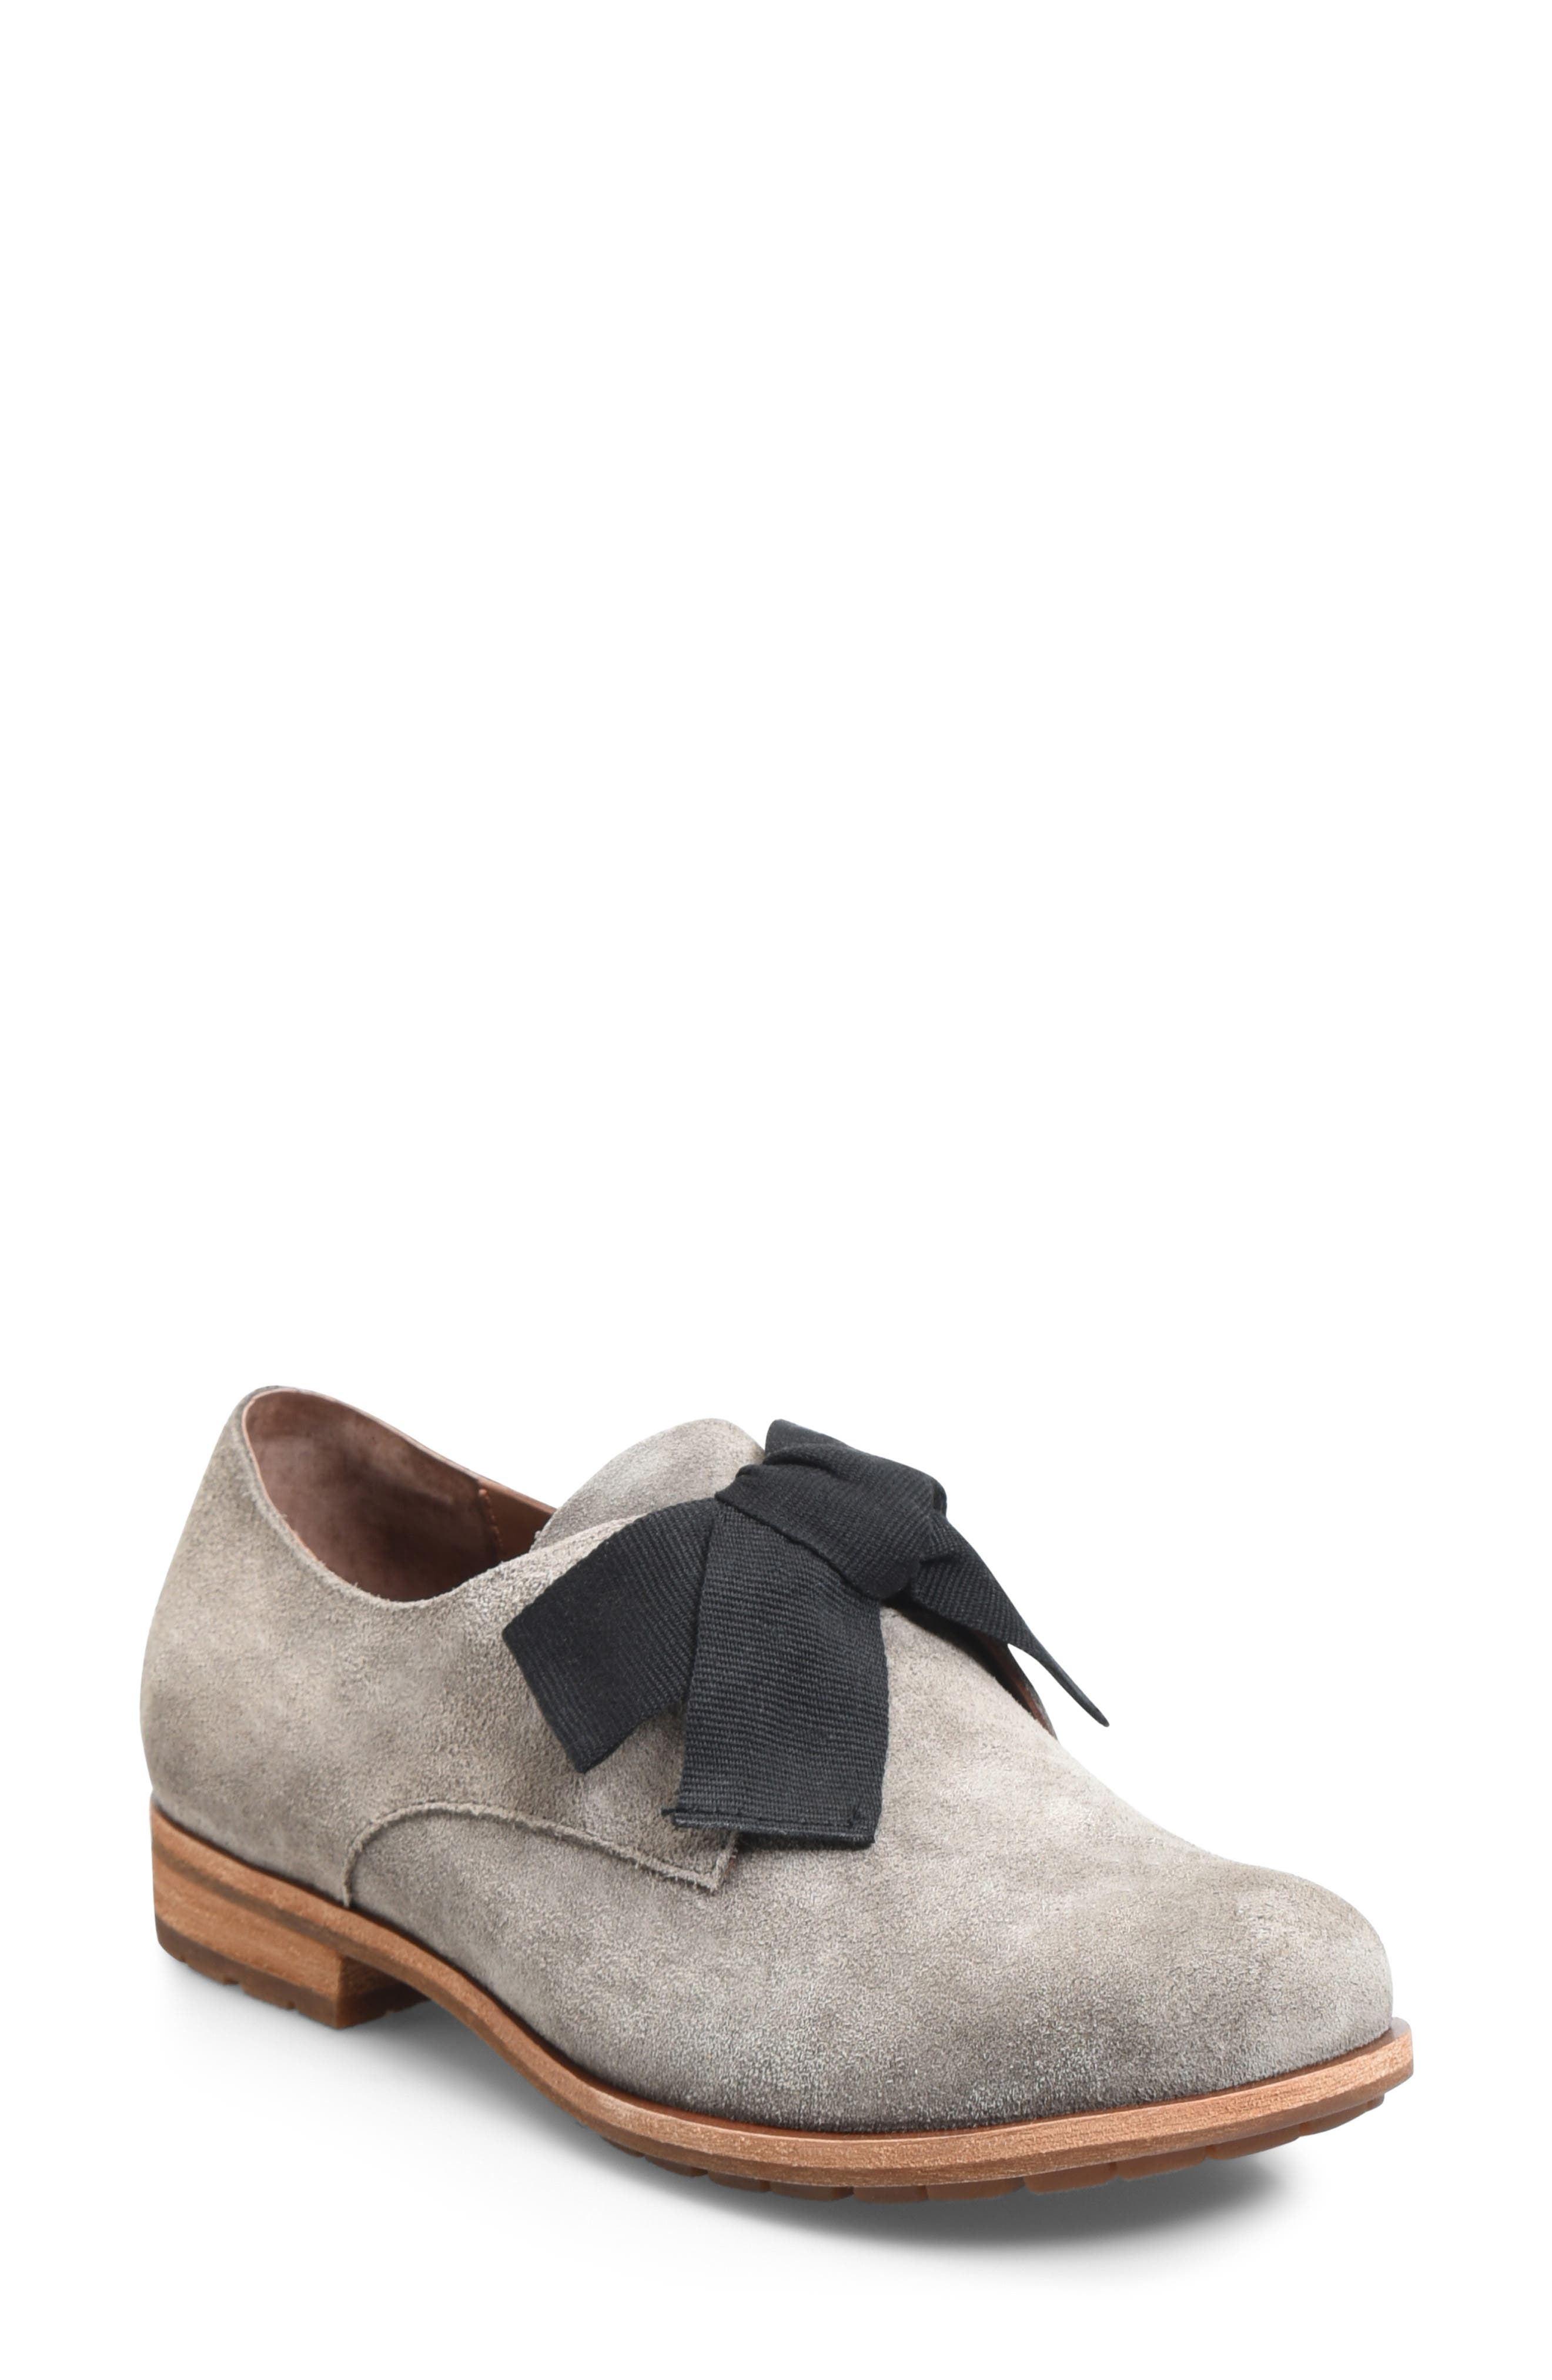 Kork-Ease Beryl Bow Flat- Grey